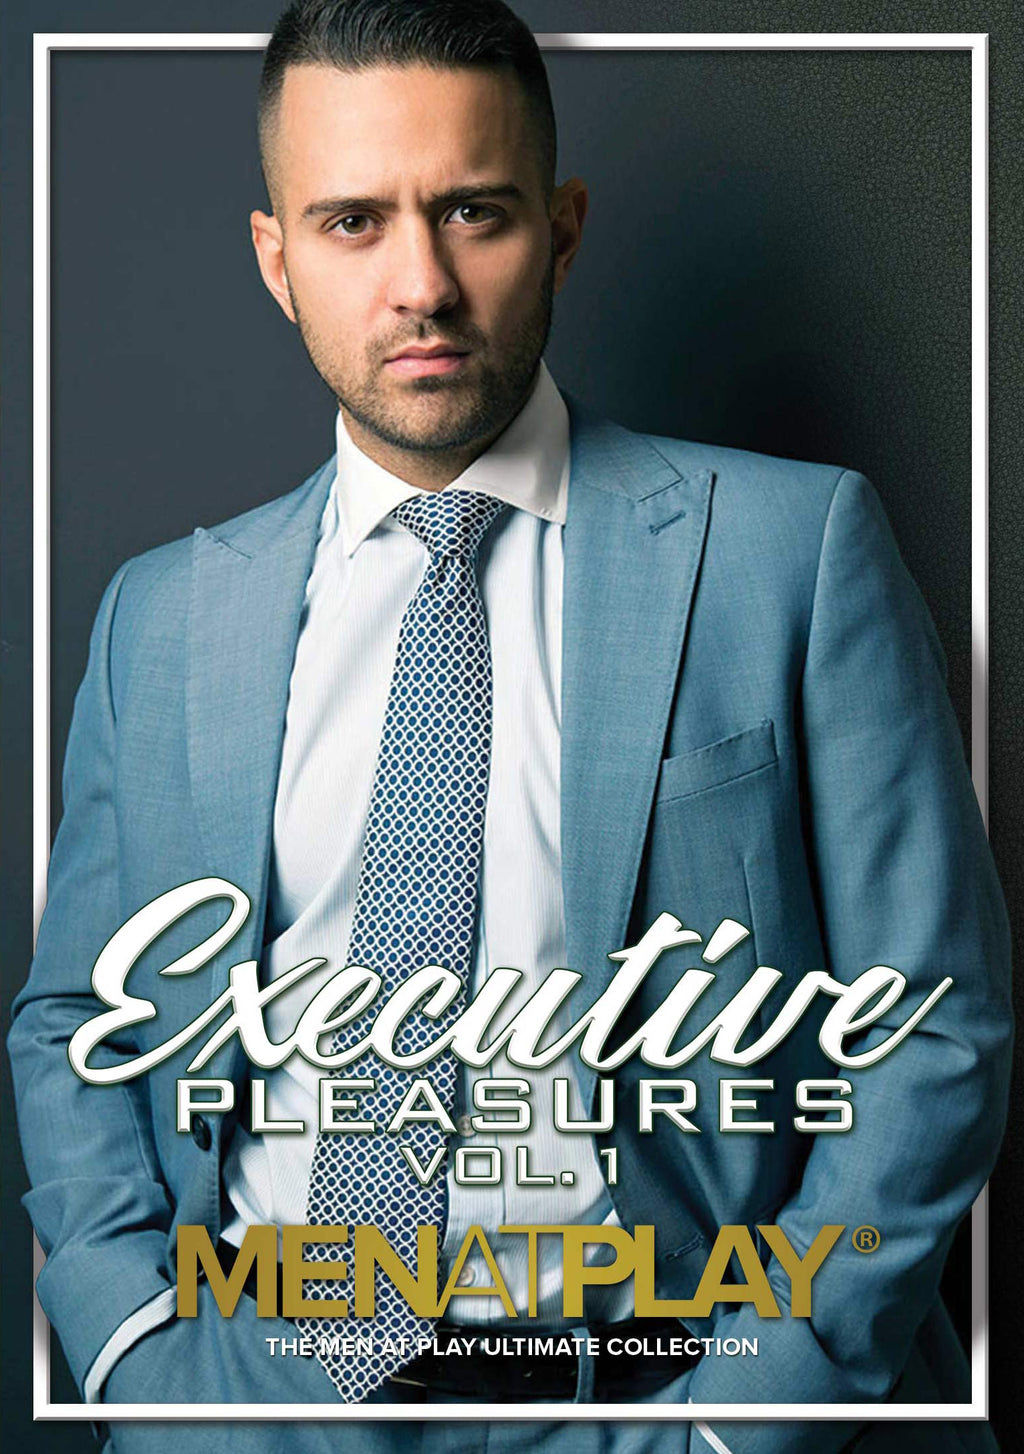 Executive Pleasures vol.1